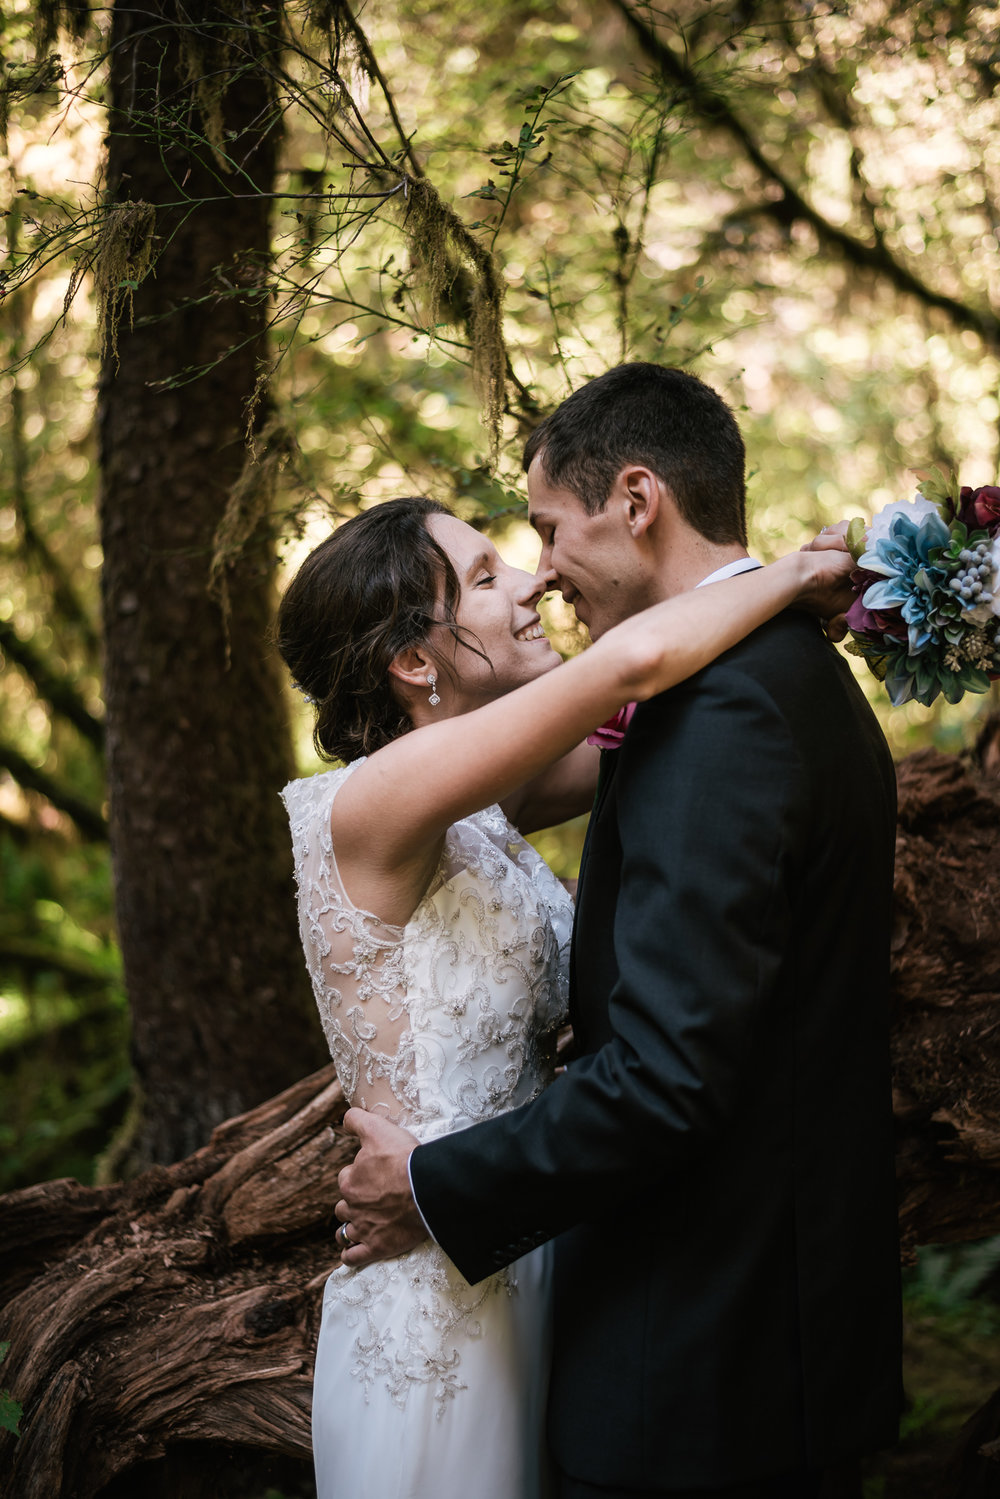 Eloping to the Hoh Rainforest in Olympic National Park.